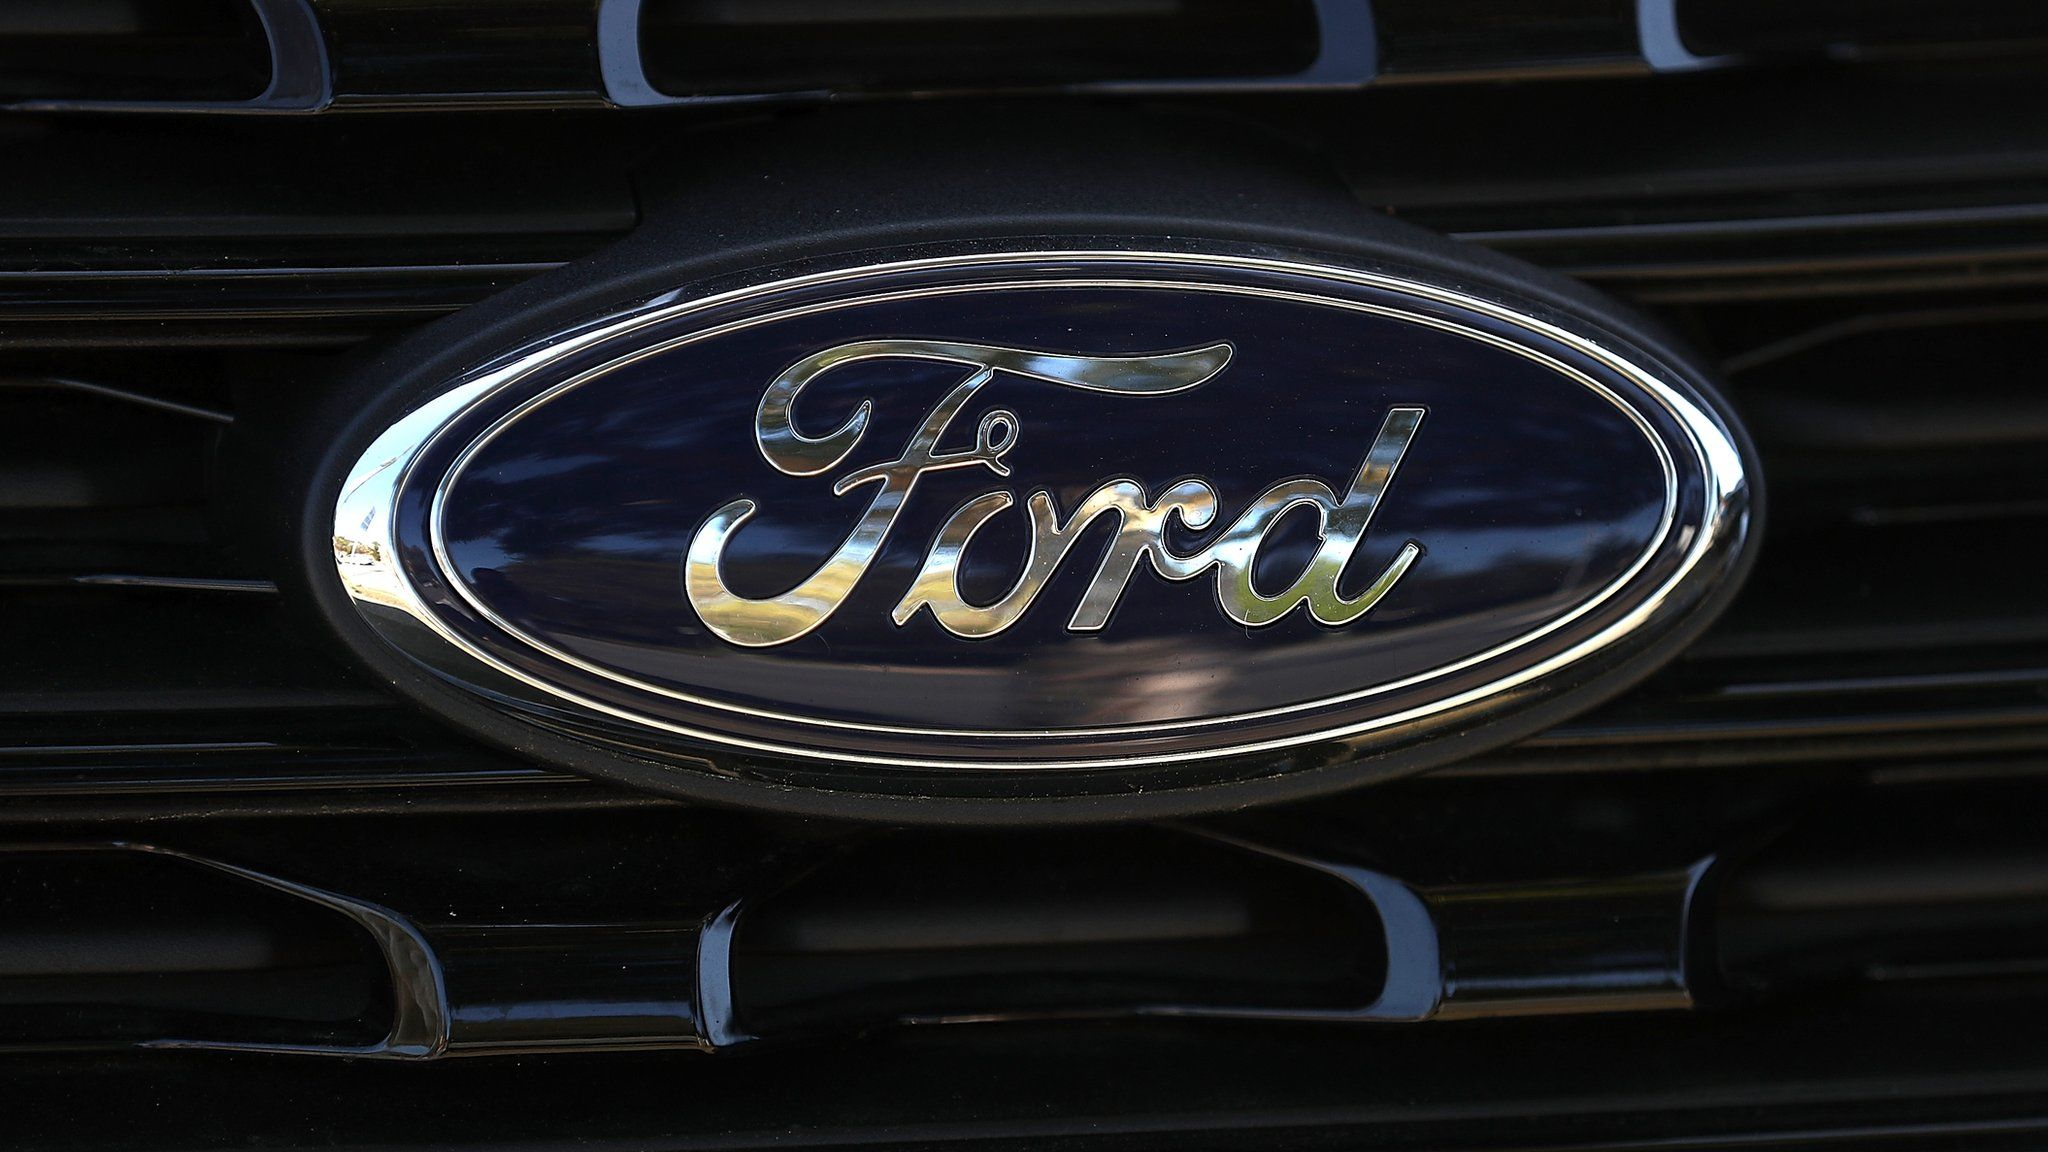 Ford to refund 'engine fail' EcoBoost customers - BBC News